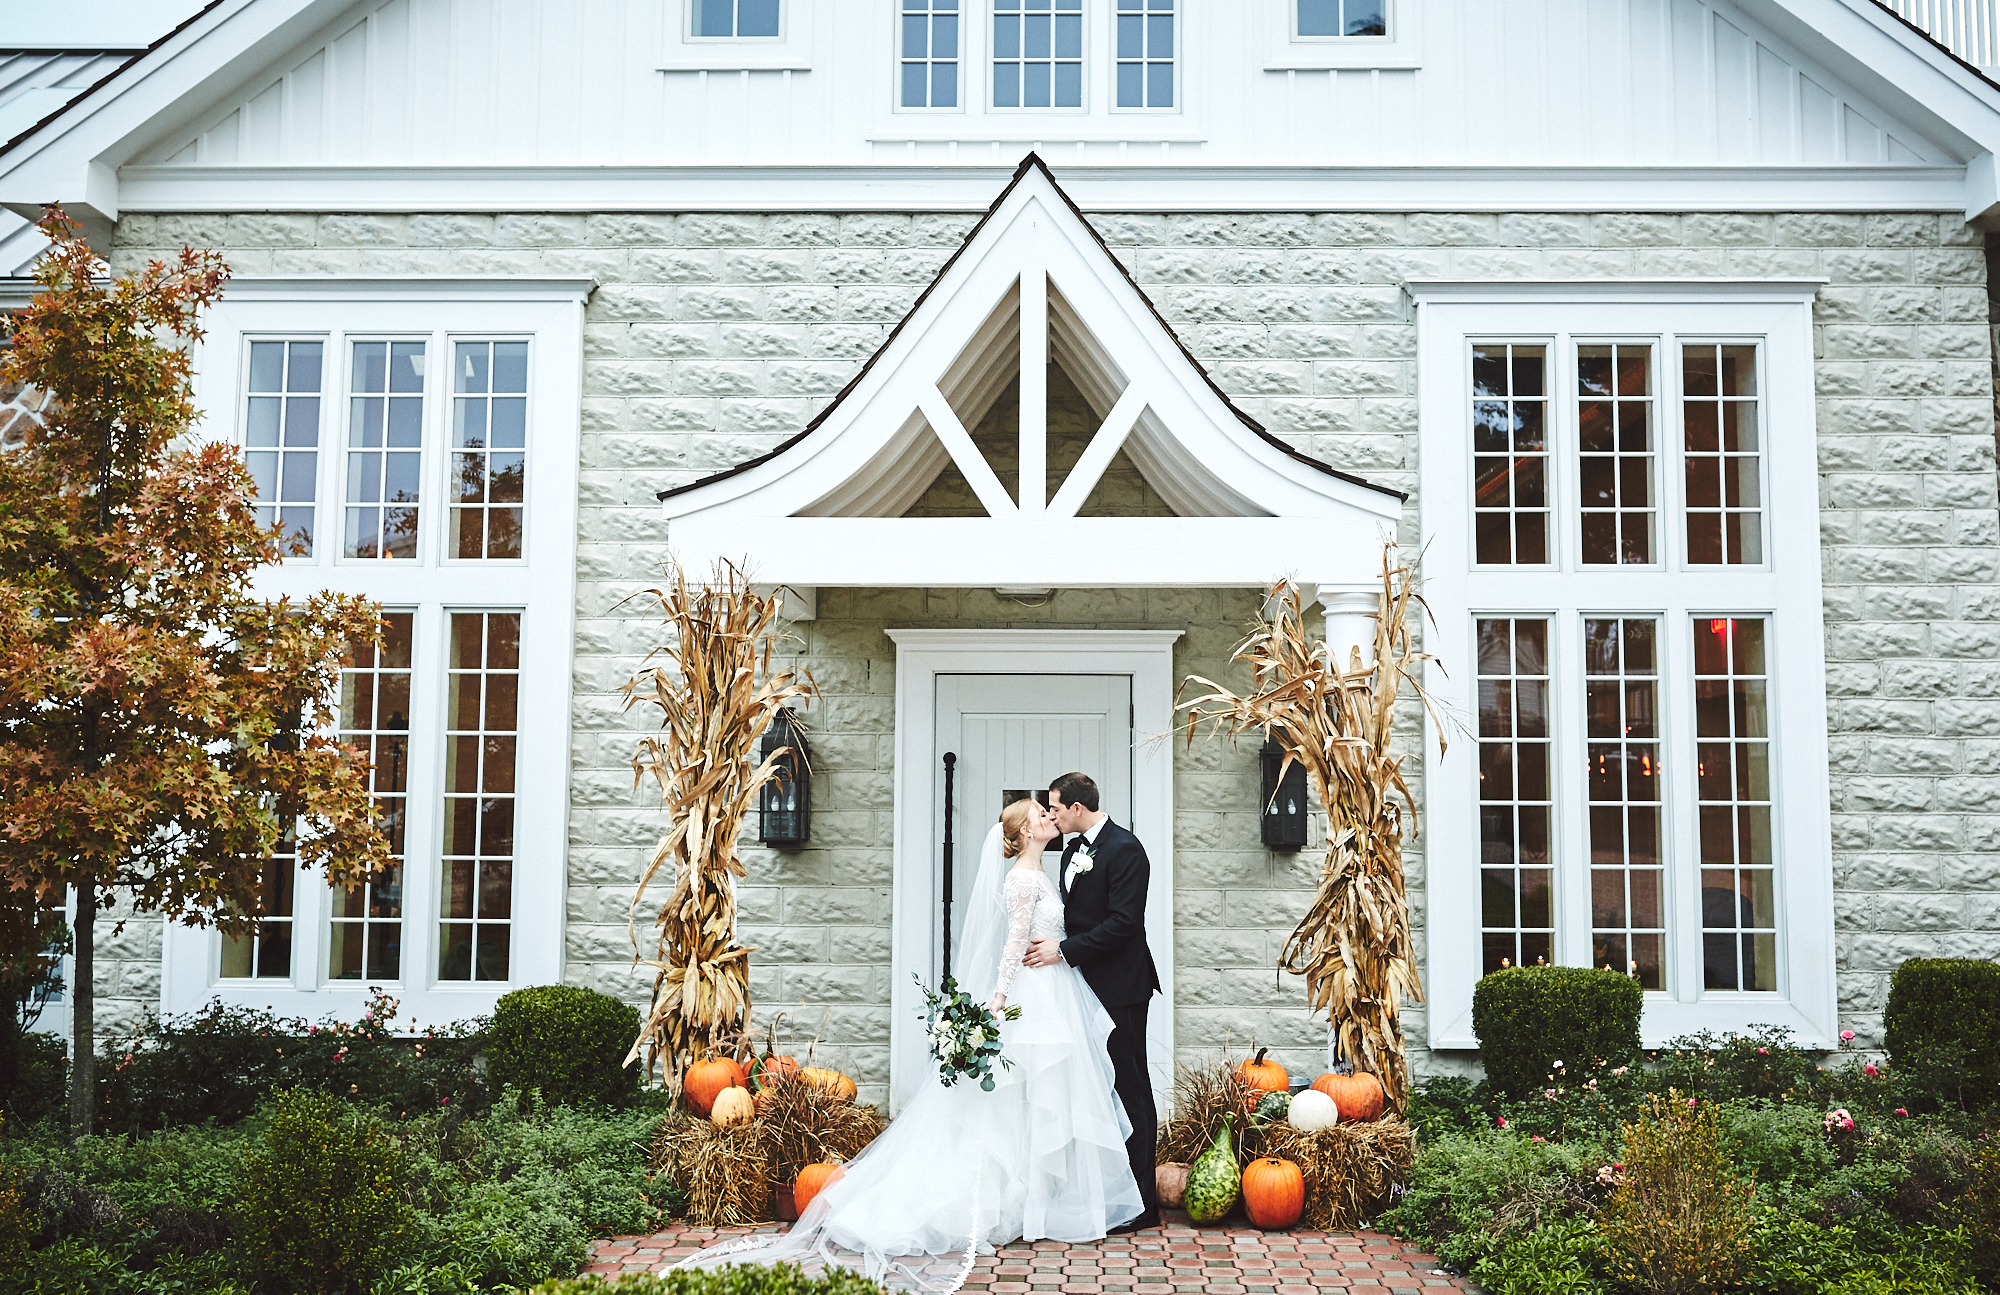 181027_TheRylandInnFallWeddingPhotography_NJWeddingPhotographer_By_BriJohnsonWeddings_0112.jpg